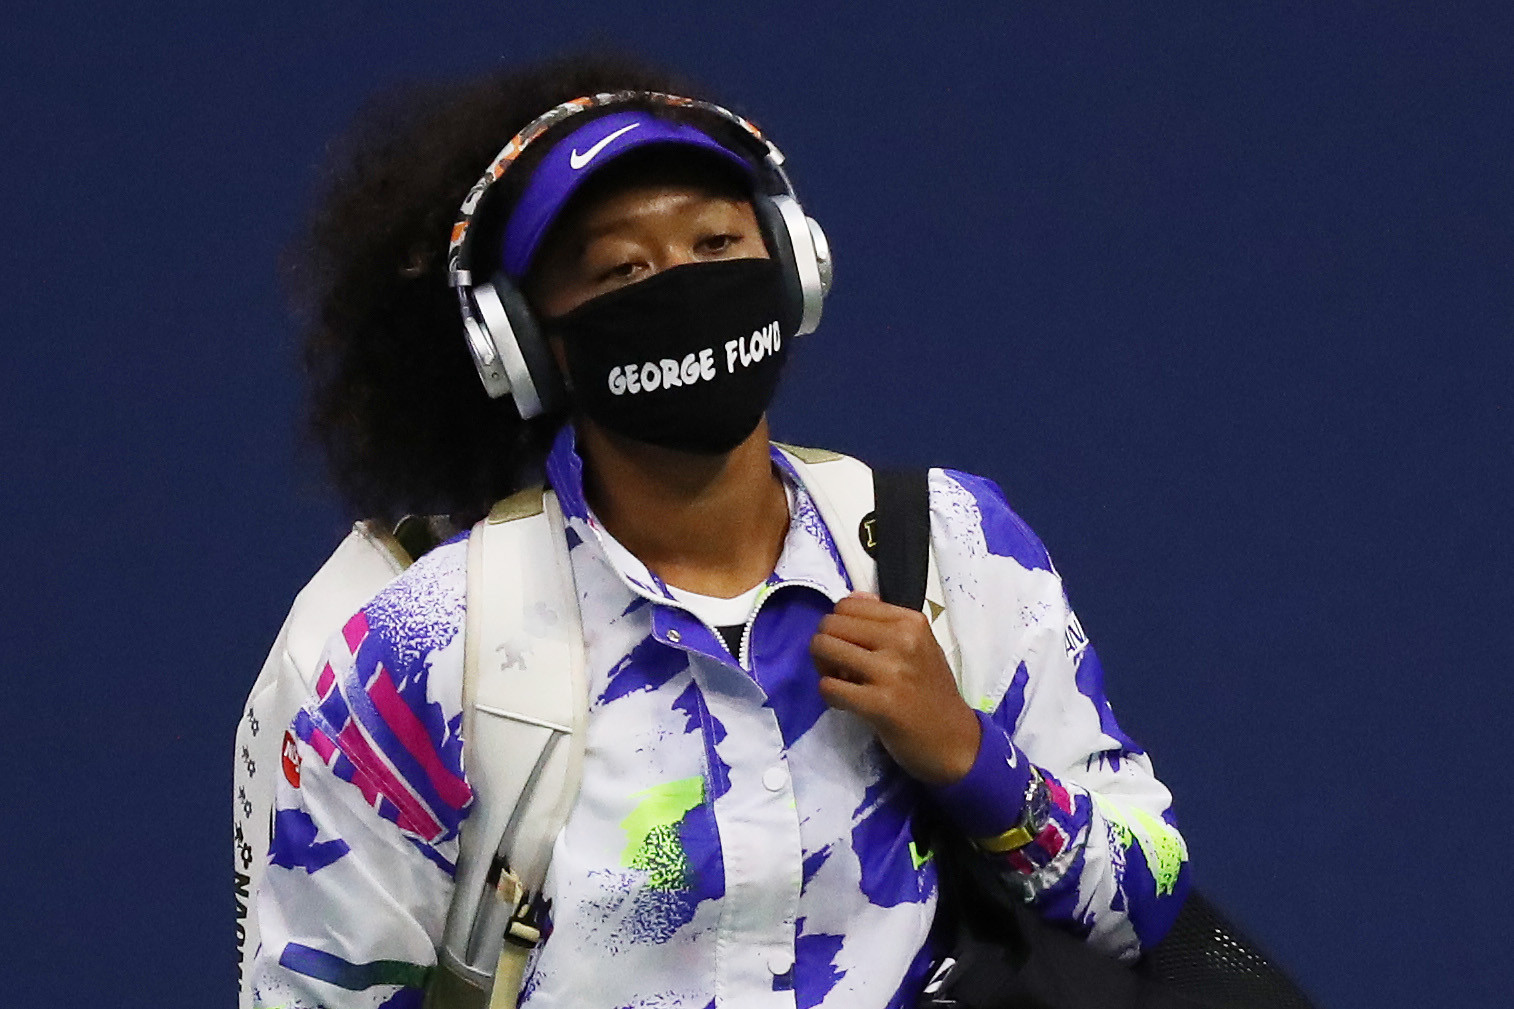 Naomi Osaka wore a facemask bearing the names of a victim of racism and police brutality in the United States before every match at last year's US Open ©Getty Images